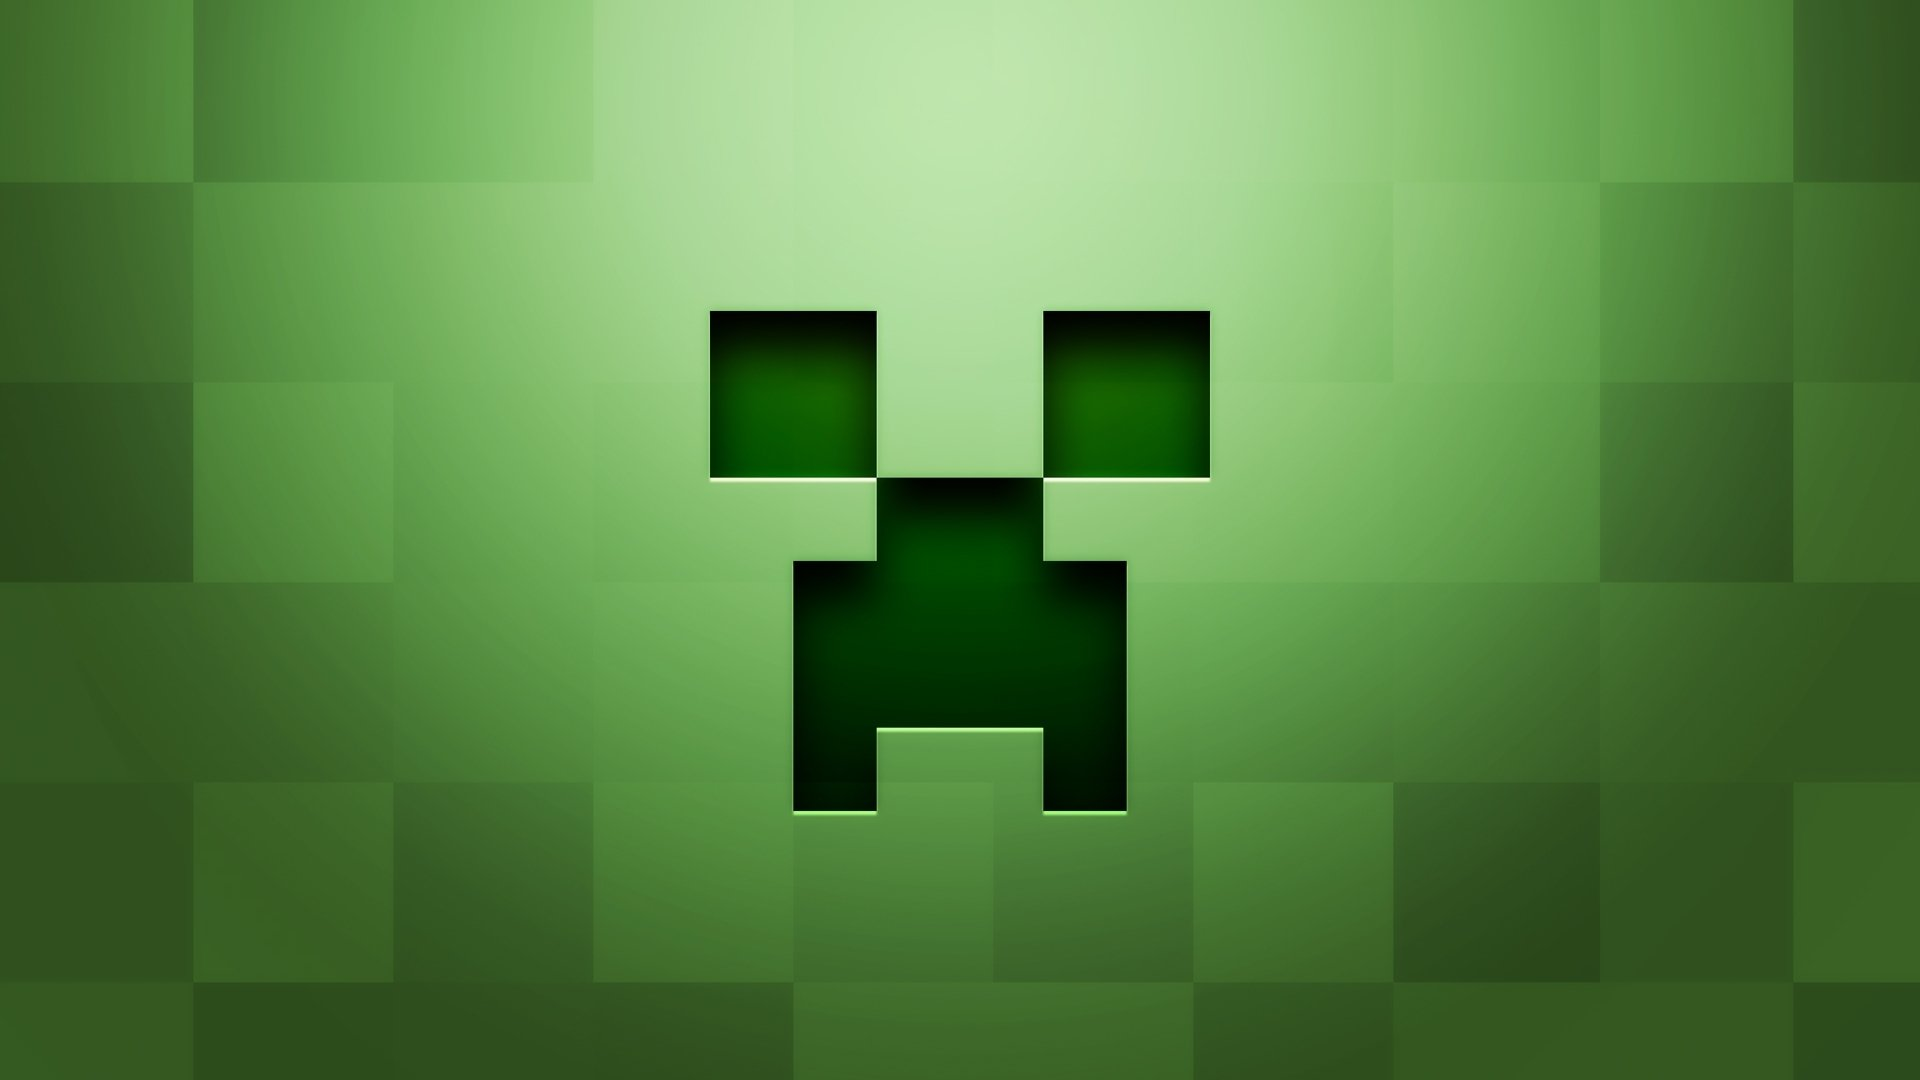 How Can I Find Free MineCraft Wallpaper Pictures?